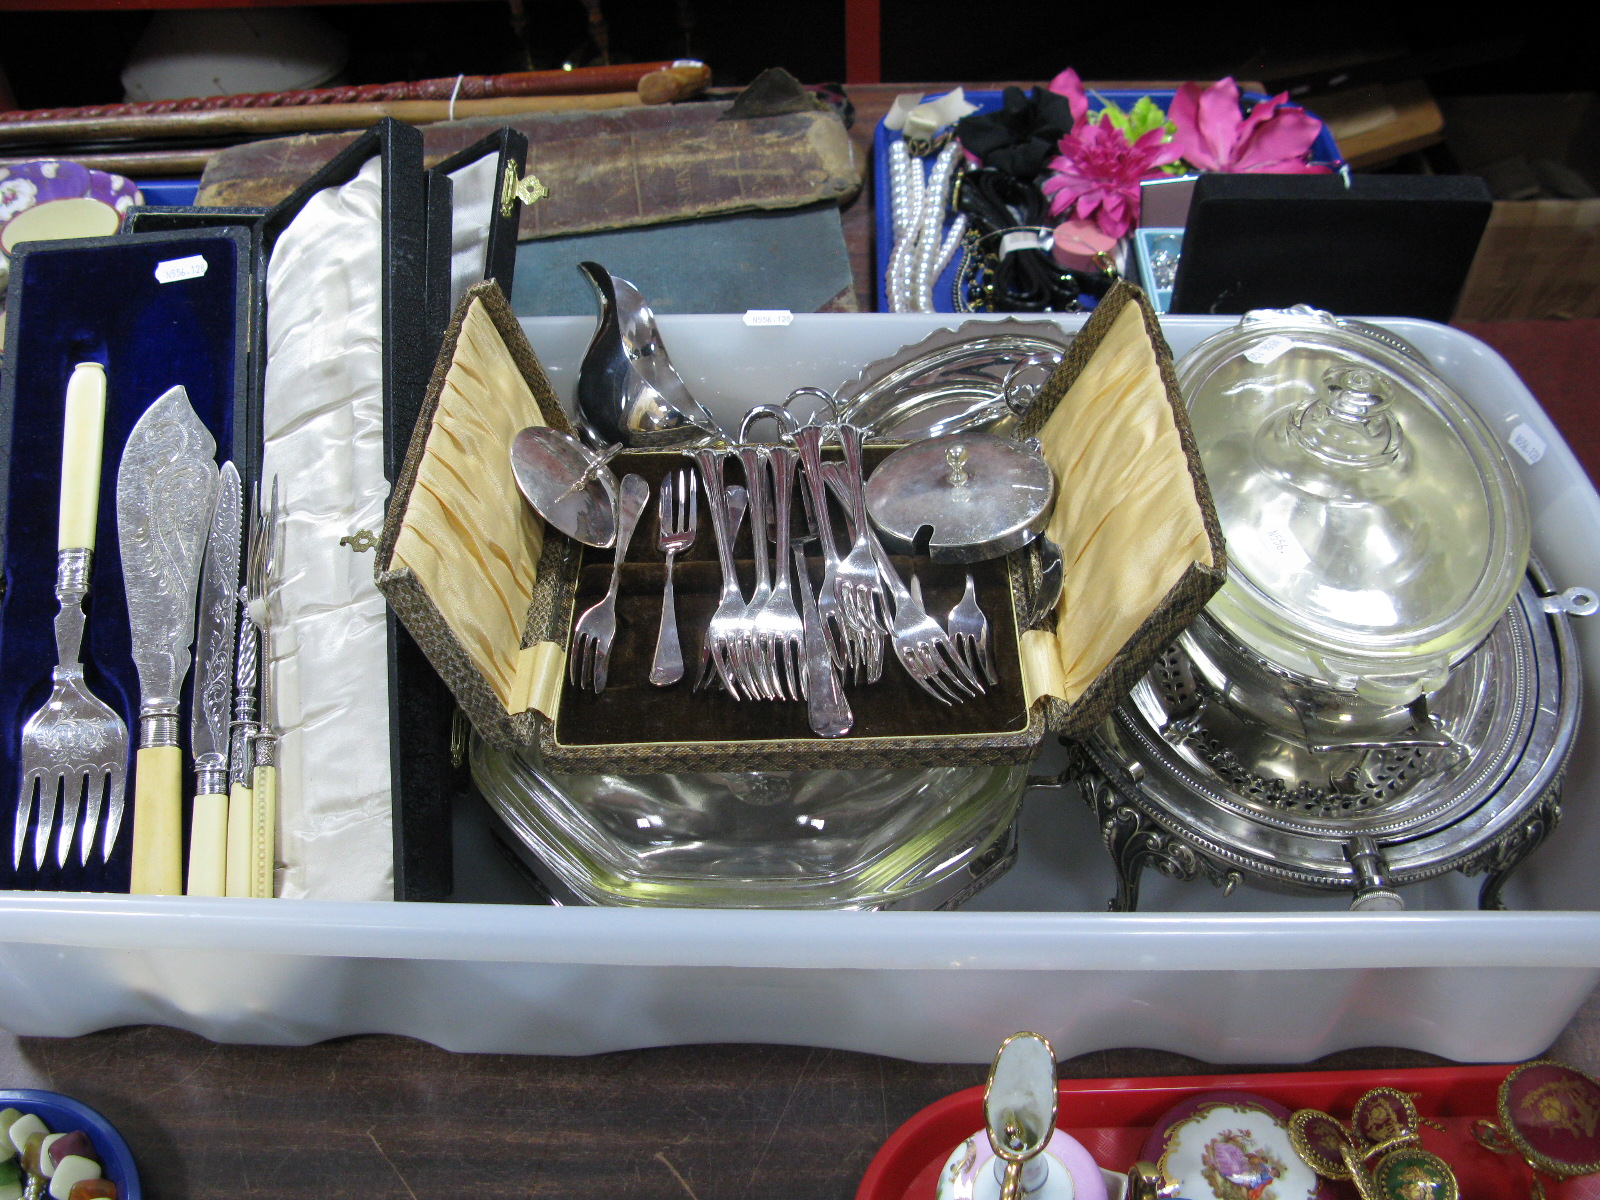 Lot 1095 - Glass Lined Tureens, a roll top breakfast server, sauce boats, decorative forks, cased fish servers,